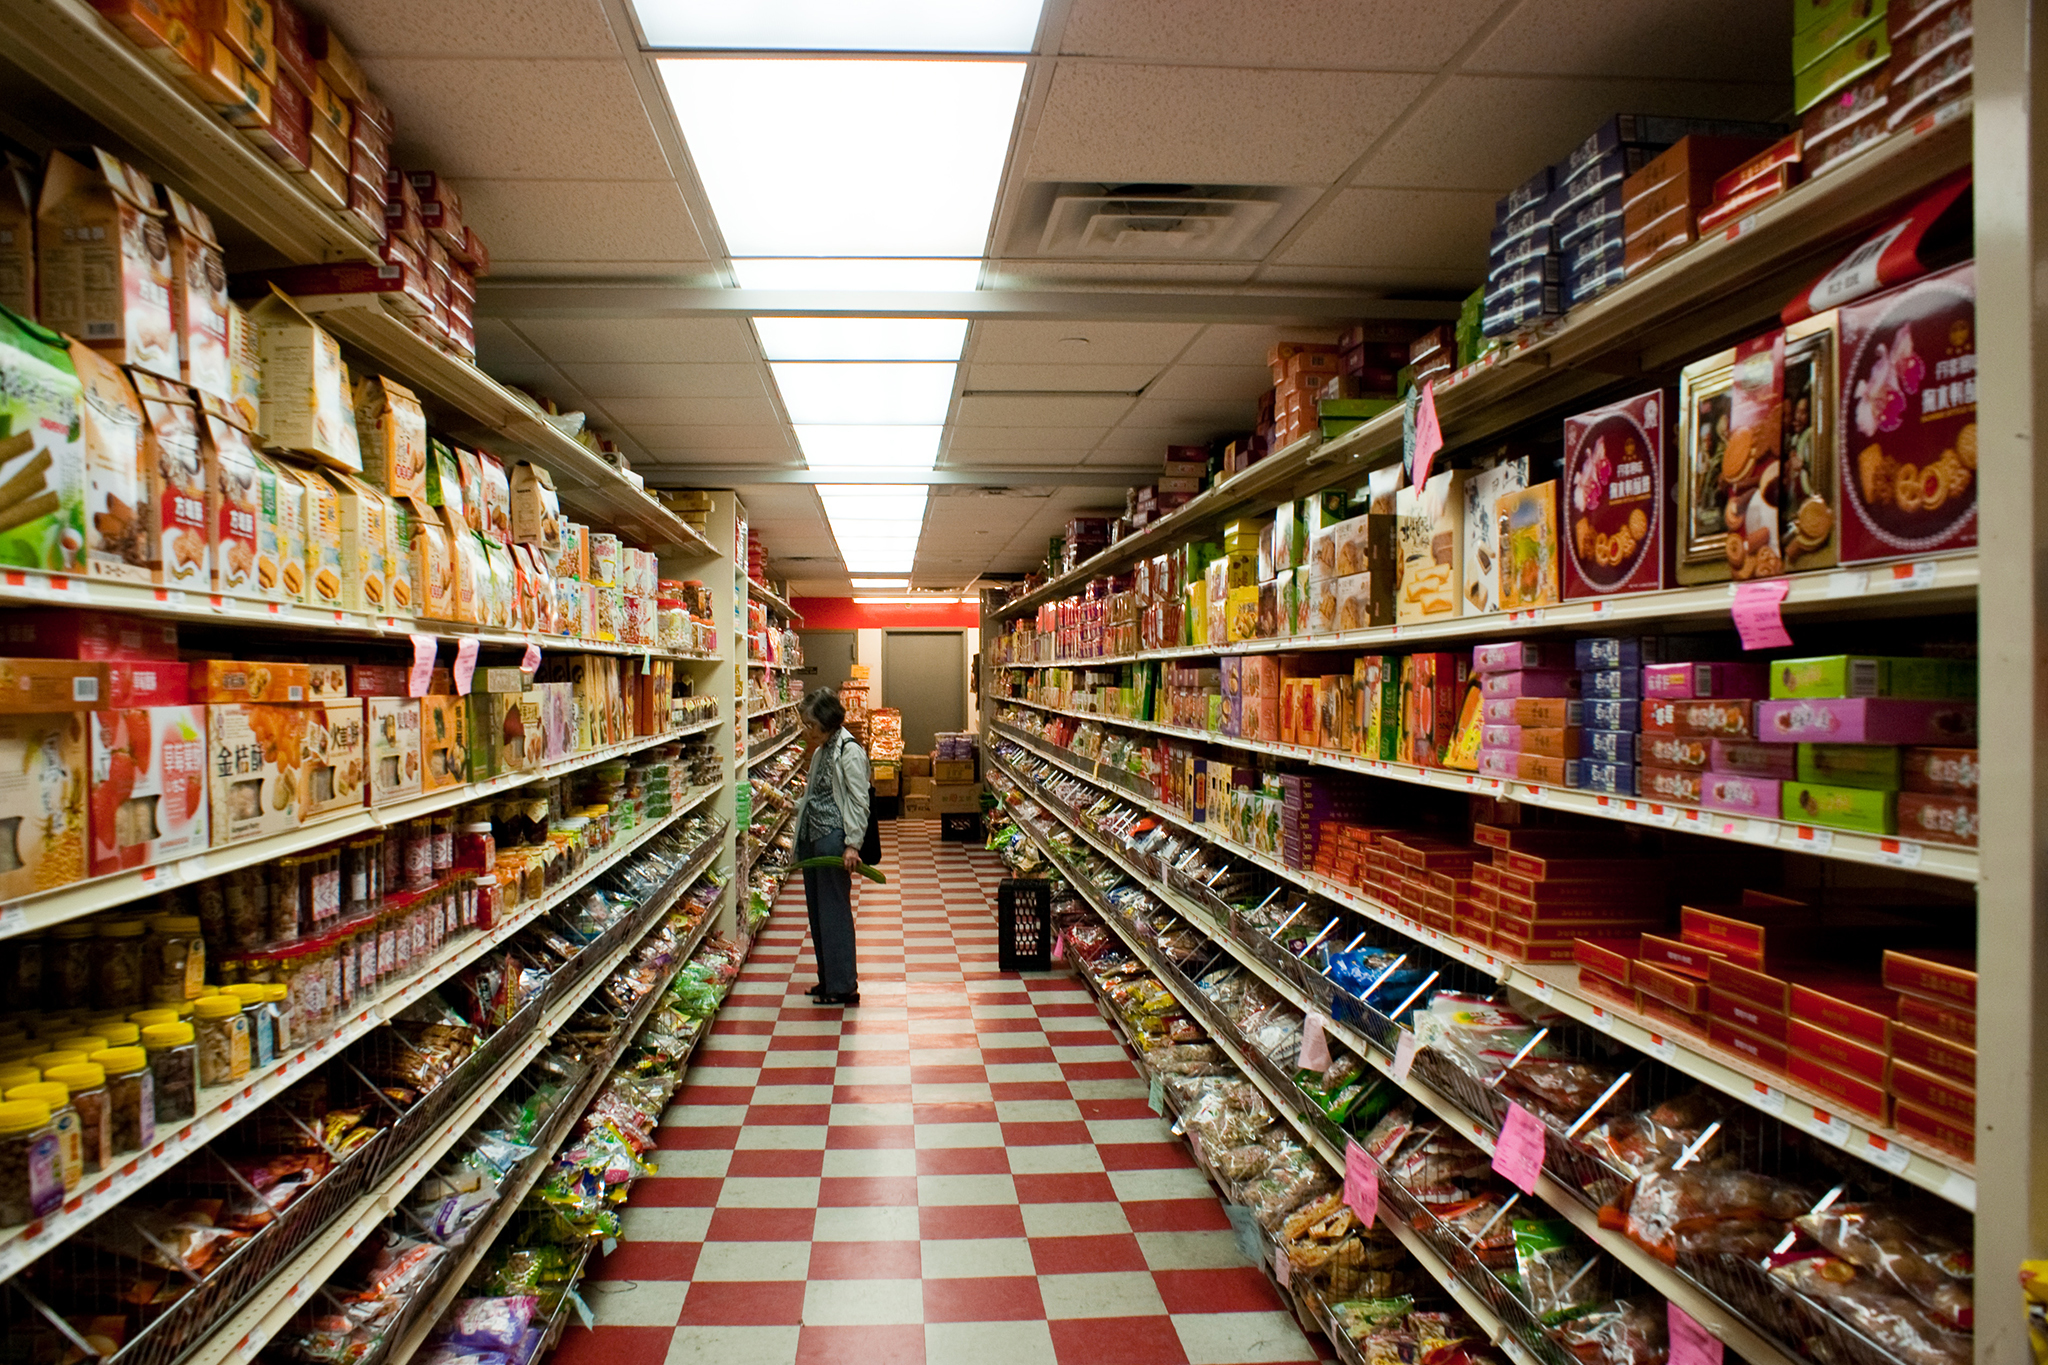 Shop for some Asian cuisine at Hong Kong Supermarket